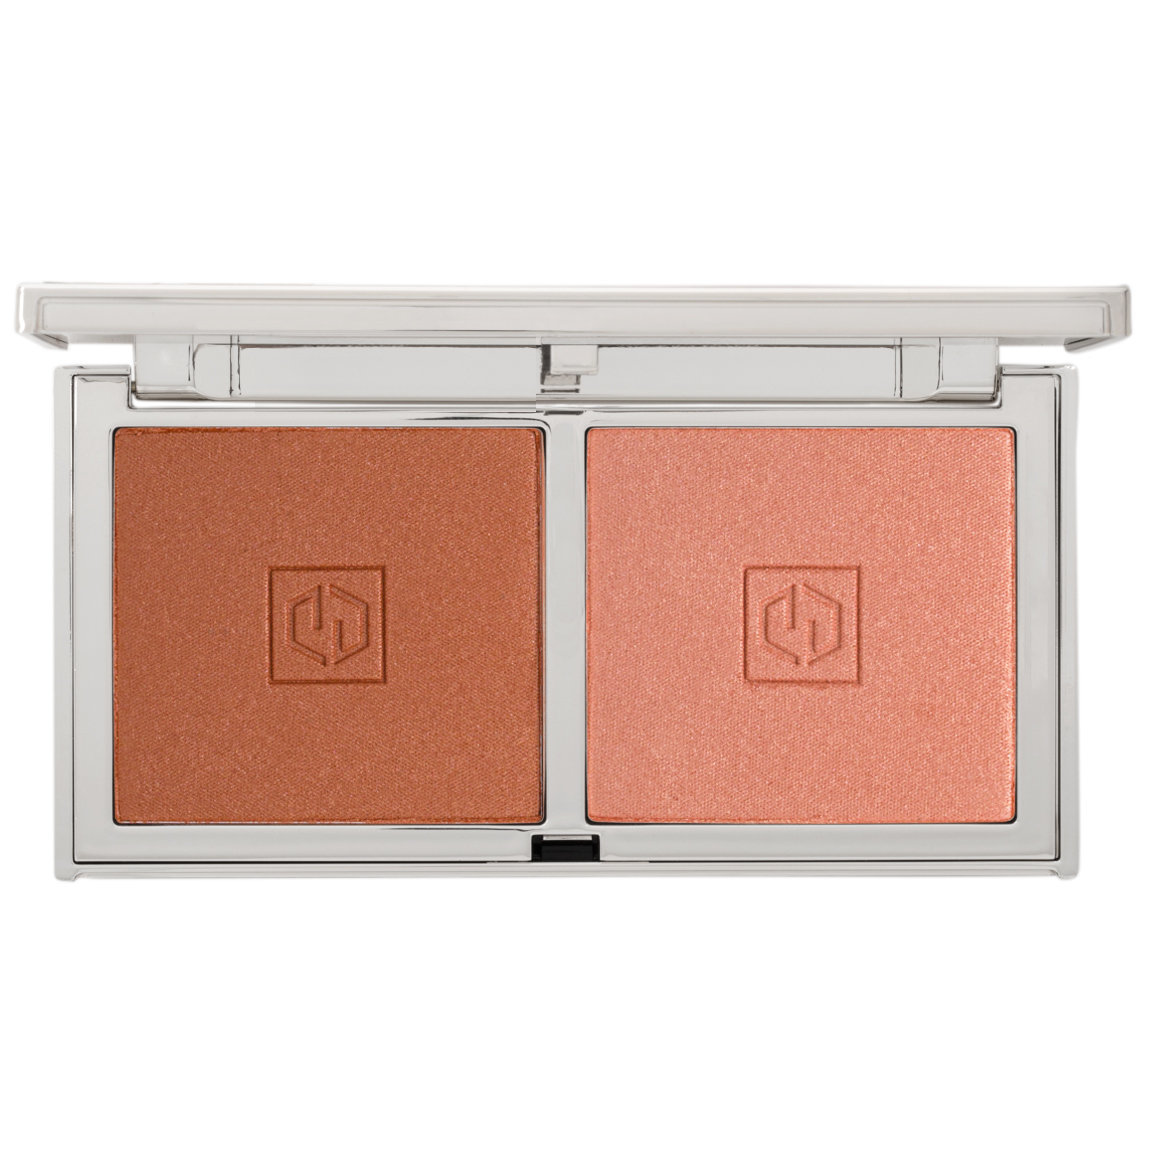 Jouer Cosmetics Blush Bouquet Cheeky Summer product smear.